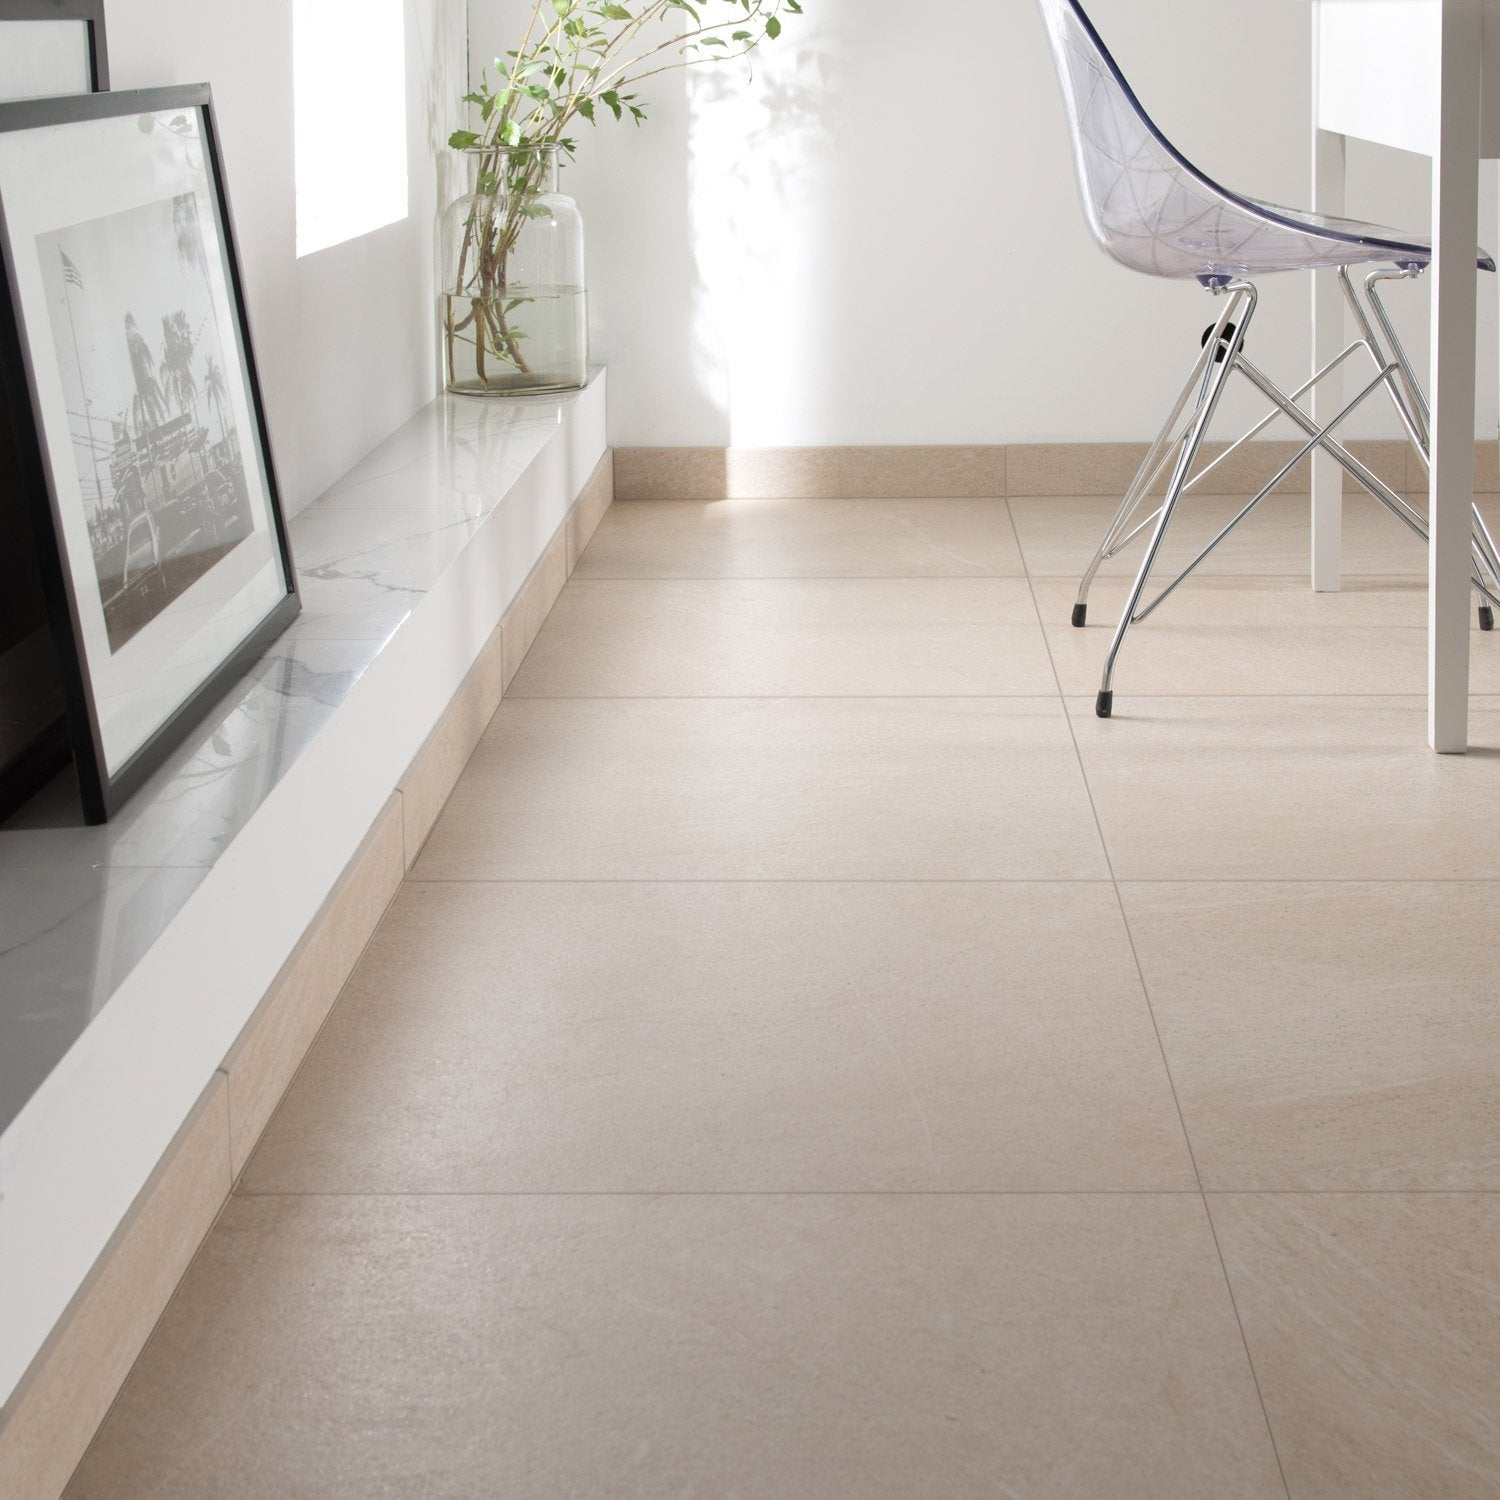 Awesome Carrelage Beige Contemporain Gallery - ansomone.us - ansomone.us